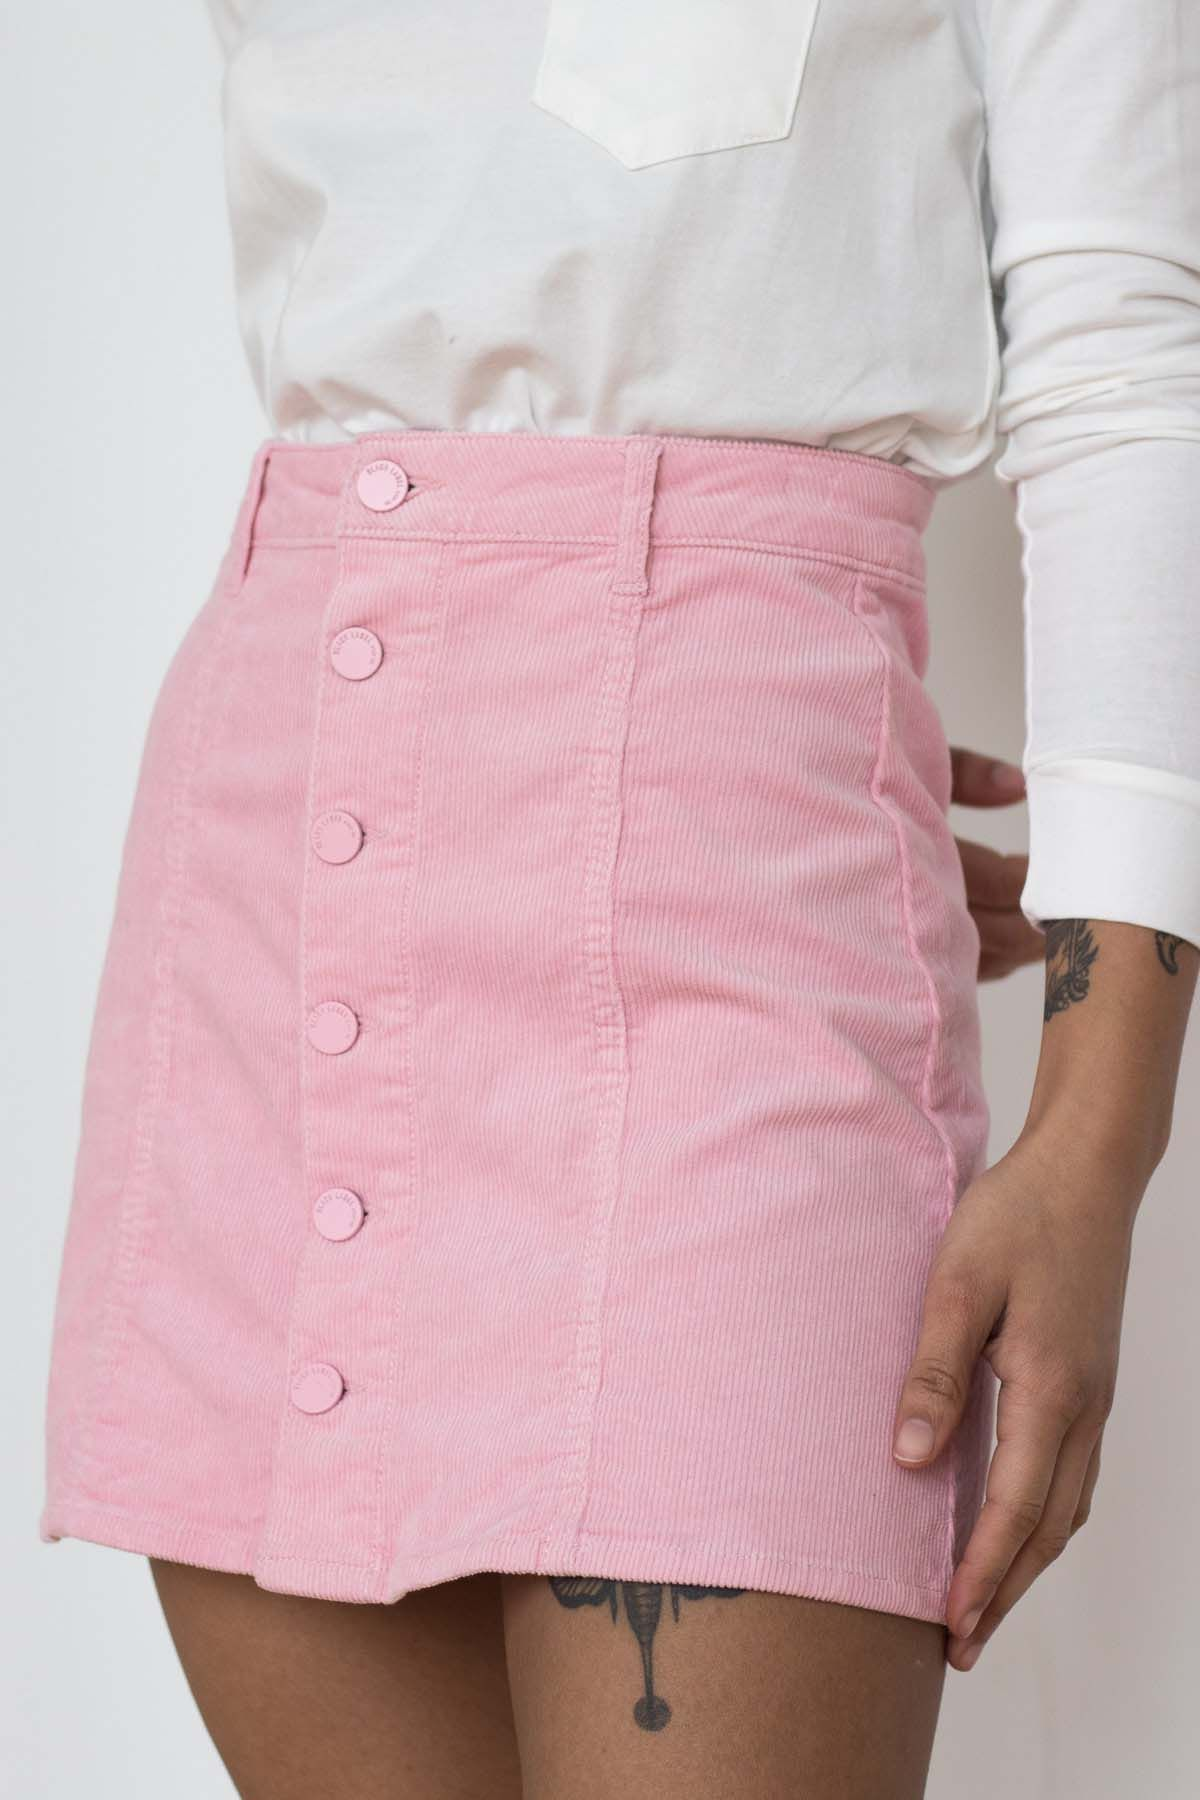 743b98a81b5b6d Have you seen our new Corduroy Skirts??? We've got natural colors to our  pastel pink and blue!